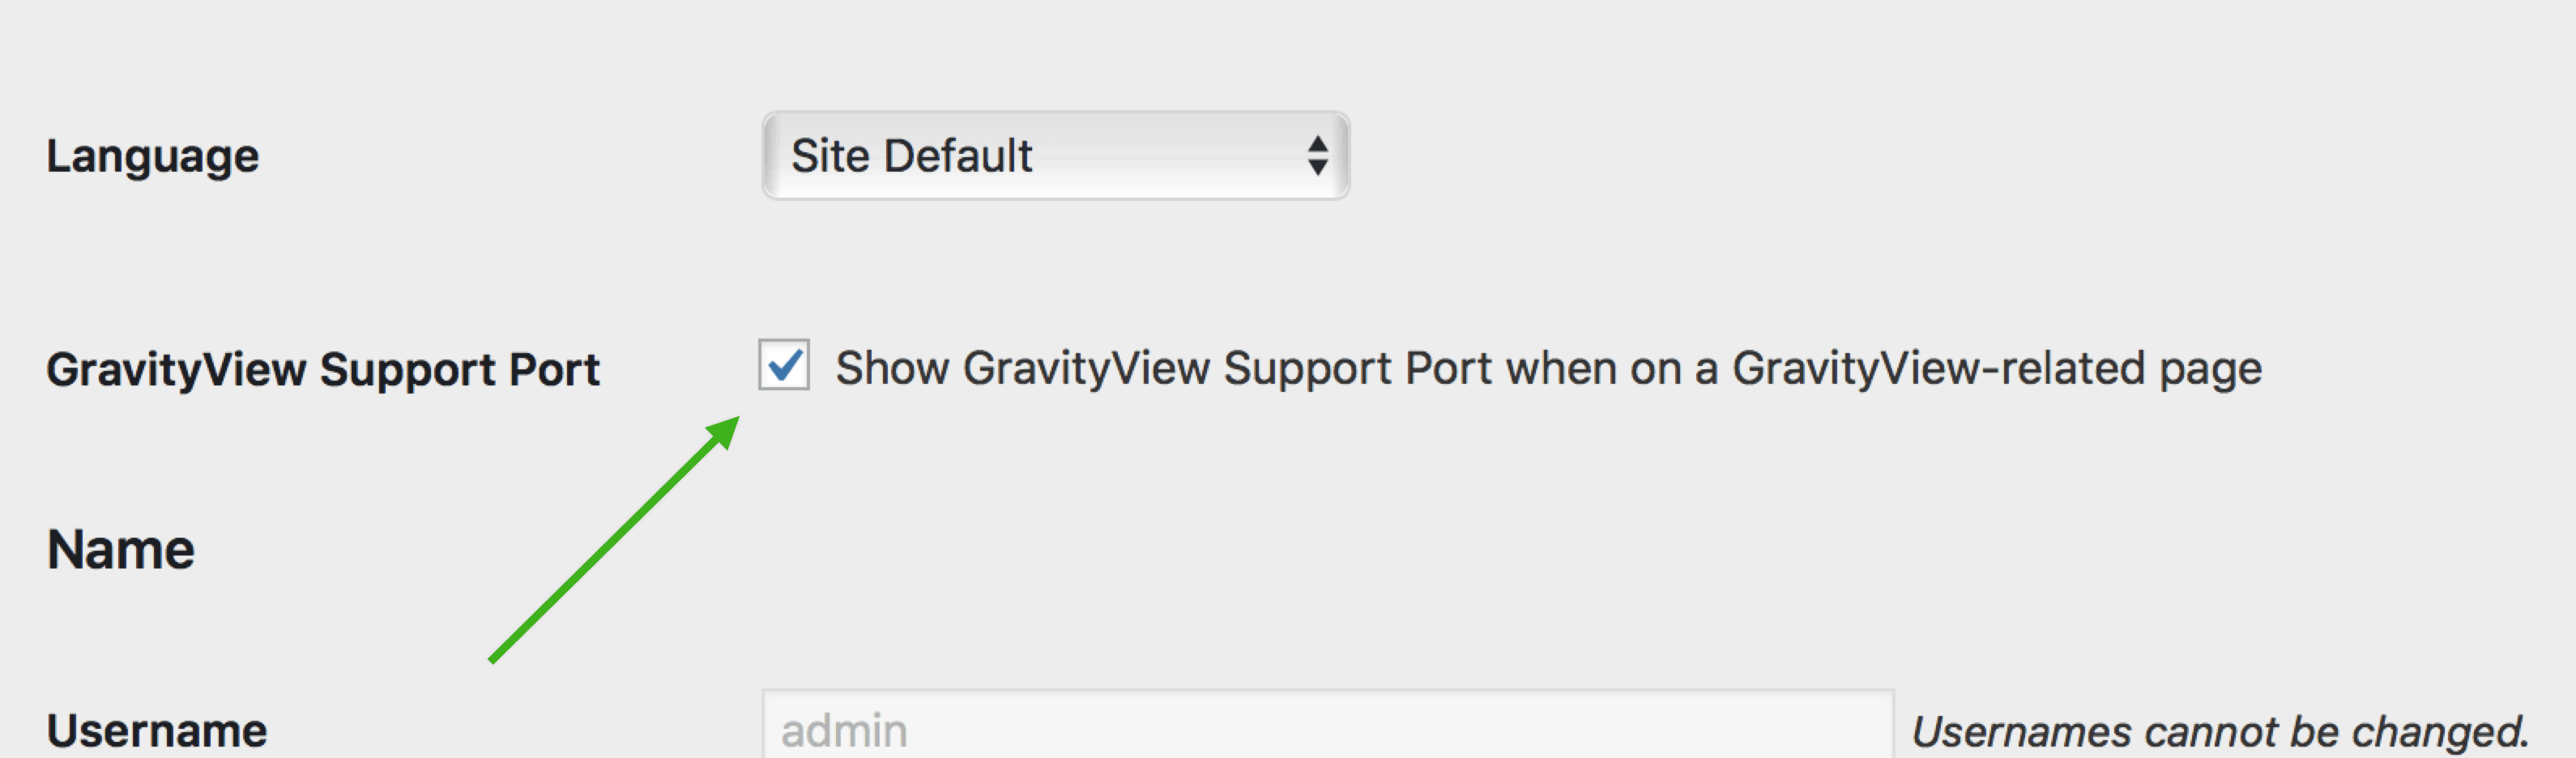 GravityView Support Port setting in the WordPress User Profile screen